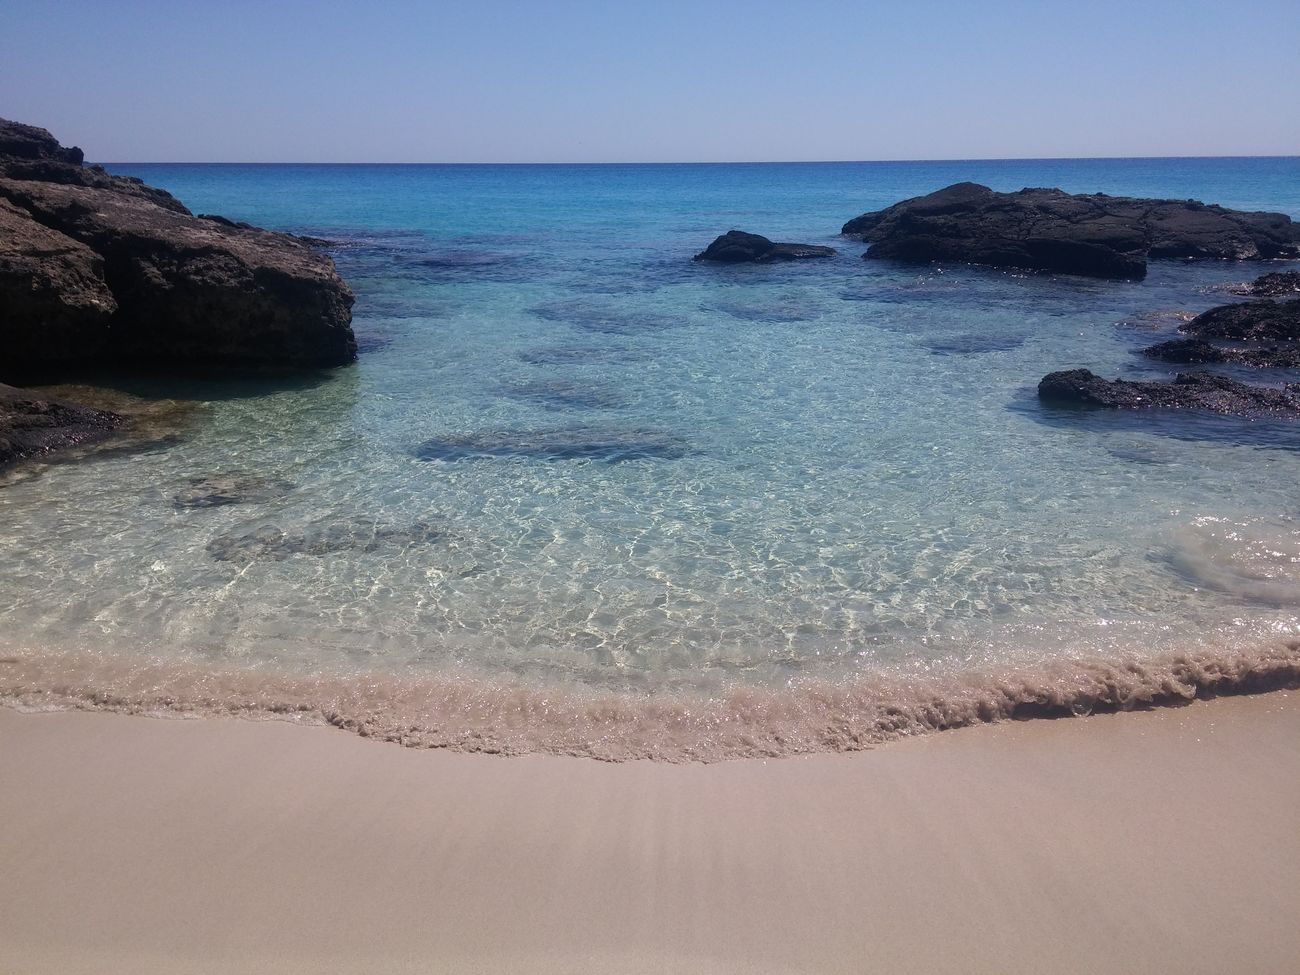 Sea Beach Horizon Over Water Beauty In Nature Nature Crete Kedrodasos Water Crystal Clear Waters Panorama Wide Angle